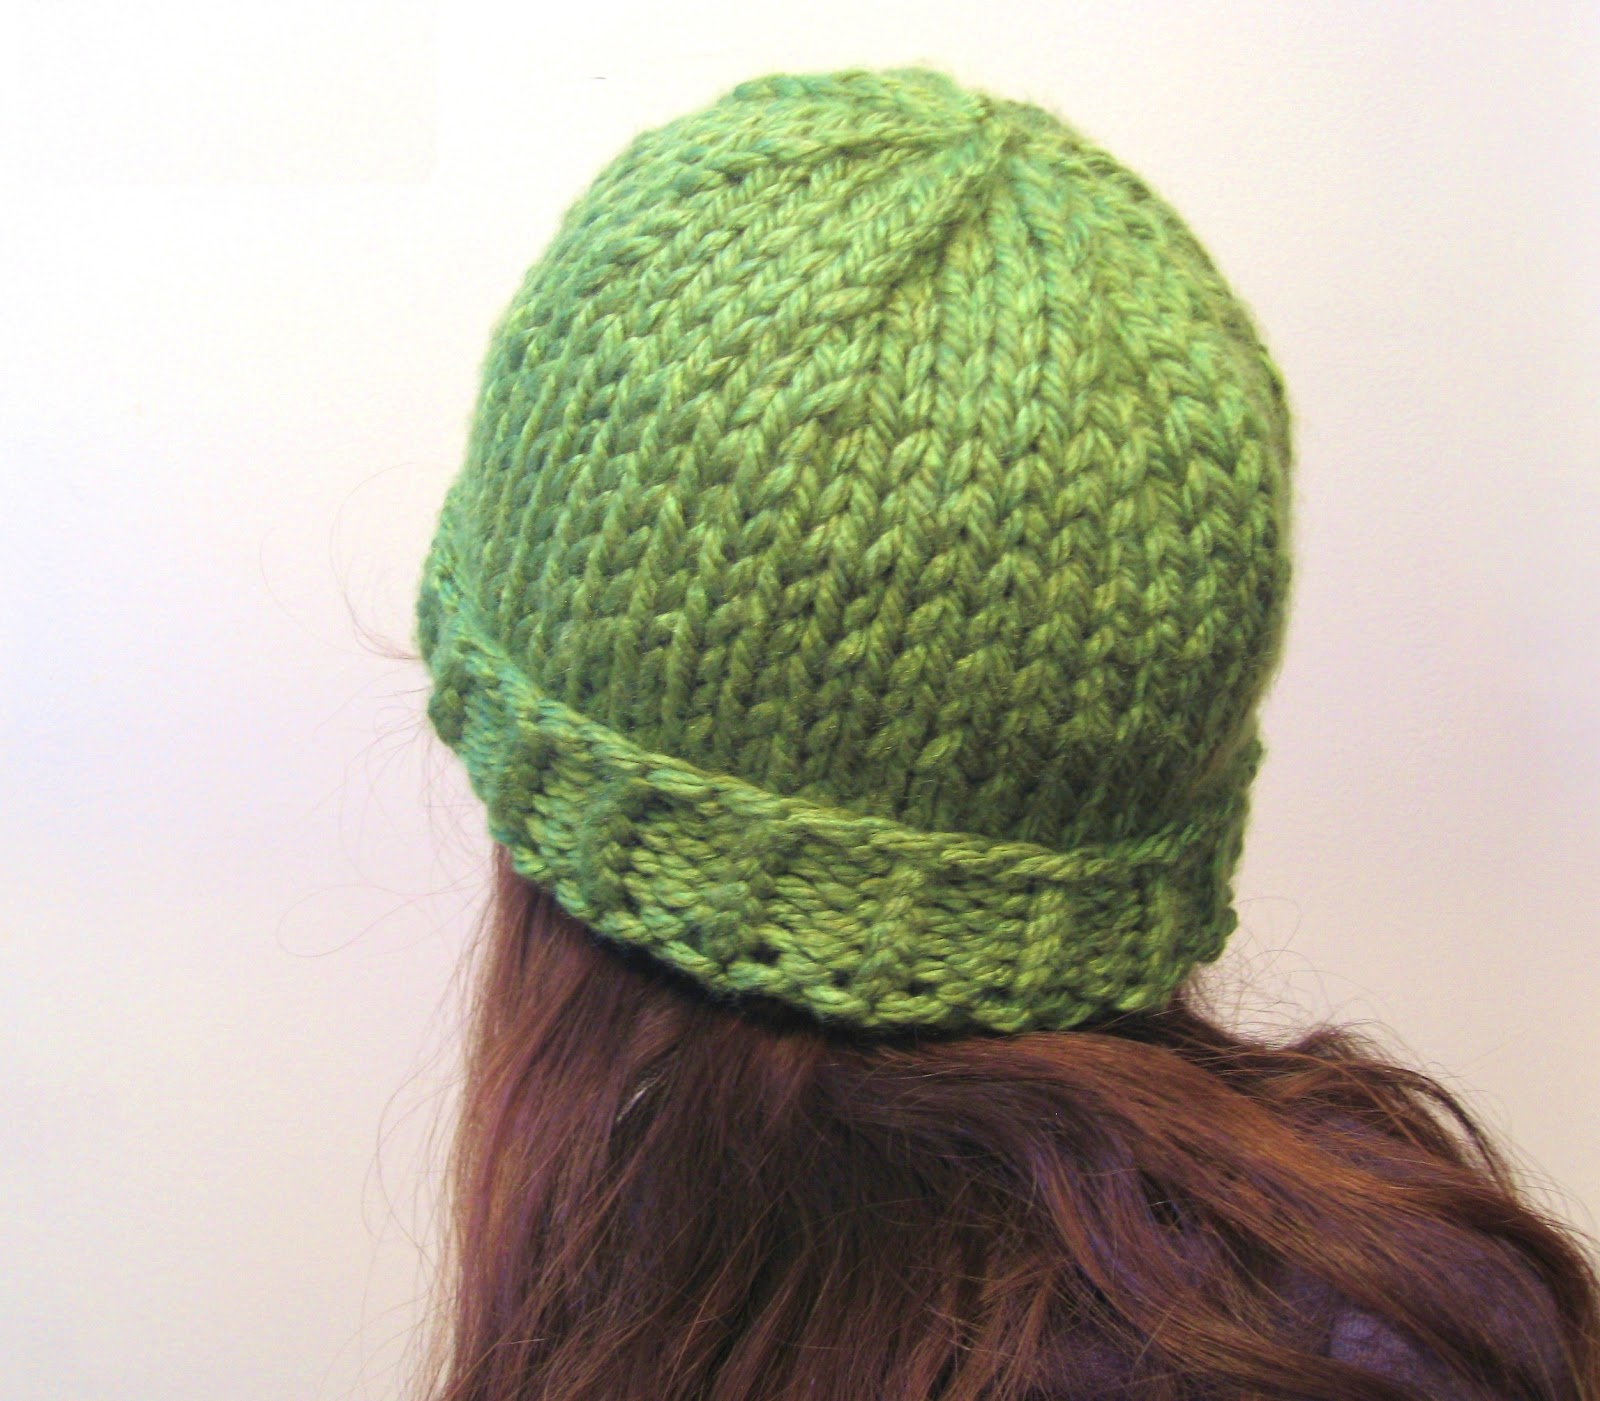 Simple Knit Hat Pattern Free : megan E sass handknits: Free Knitting Pattern: Easy Chunky Knit Beanie Hat